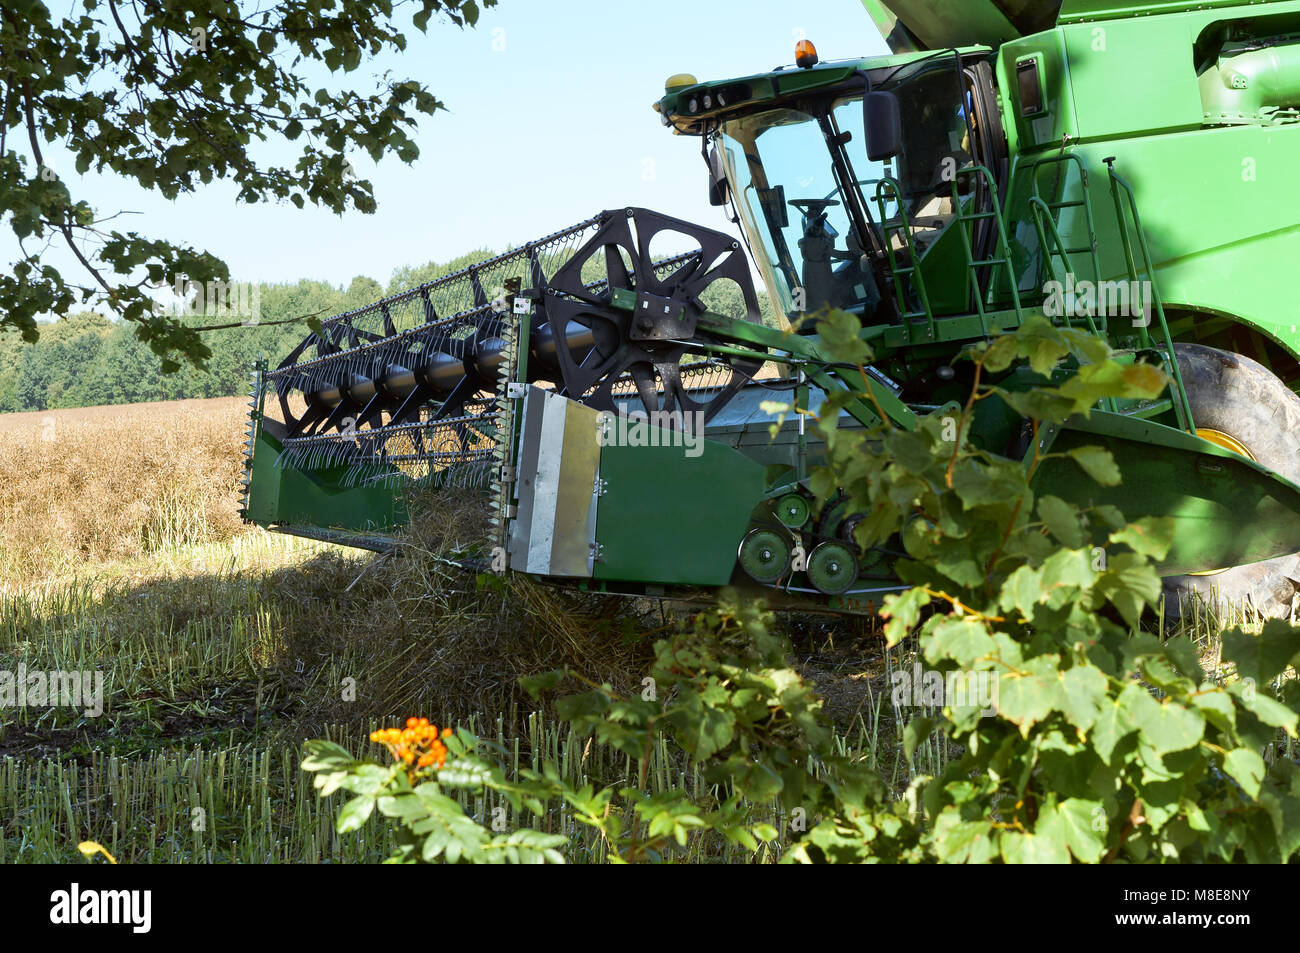 agricultural machine operate in the field, grain harvesting machines operate in the field, agricultural land - Stock Image